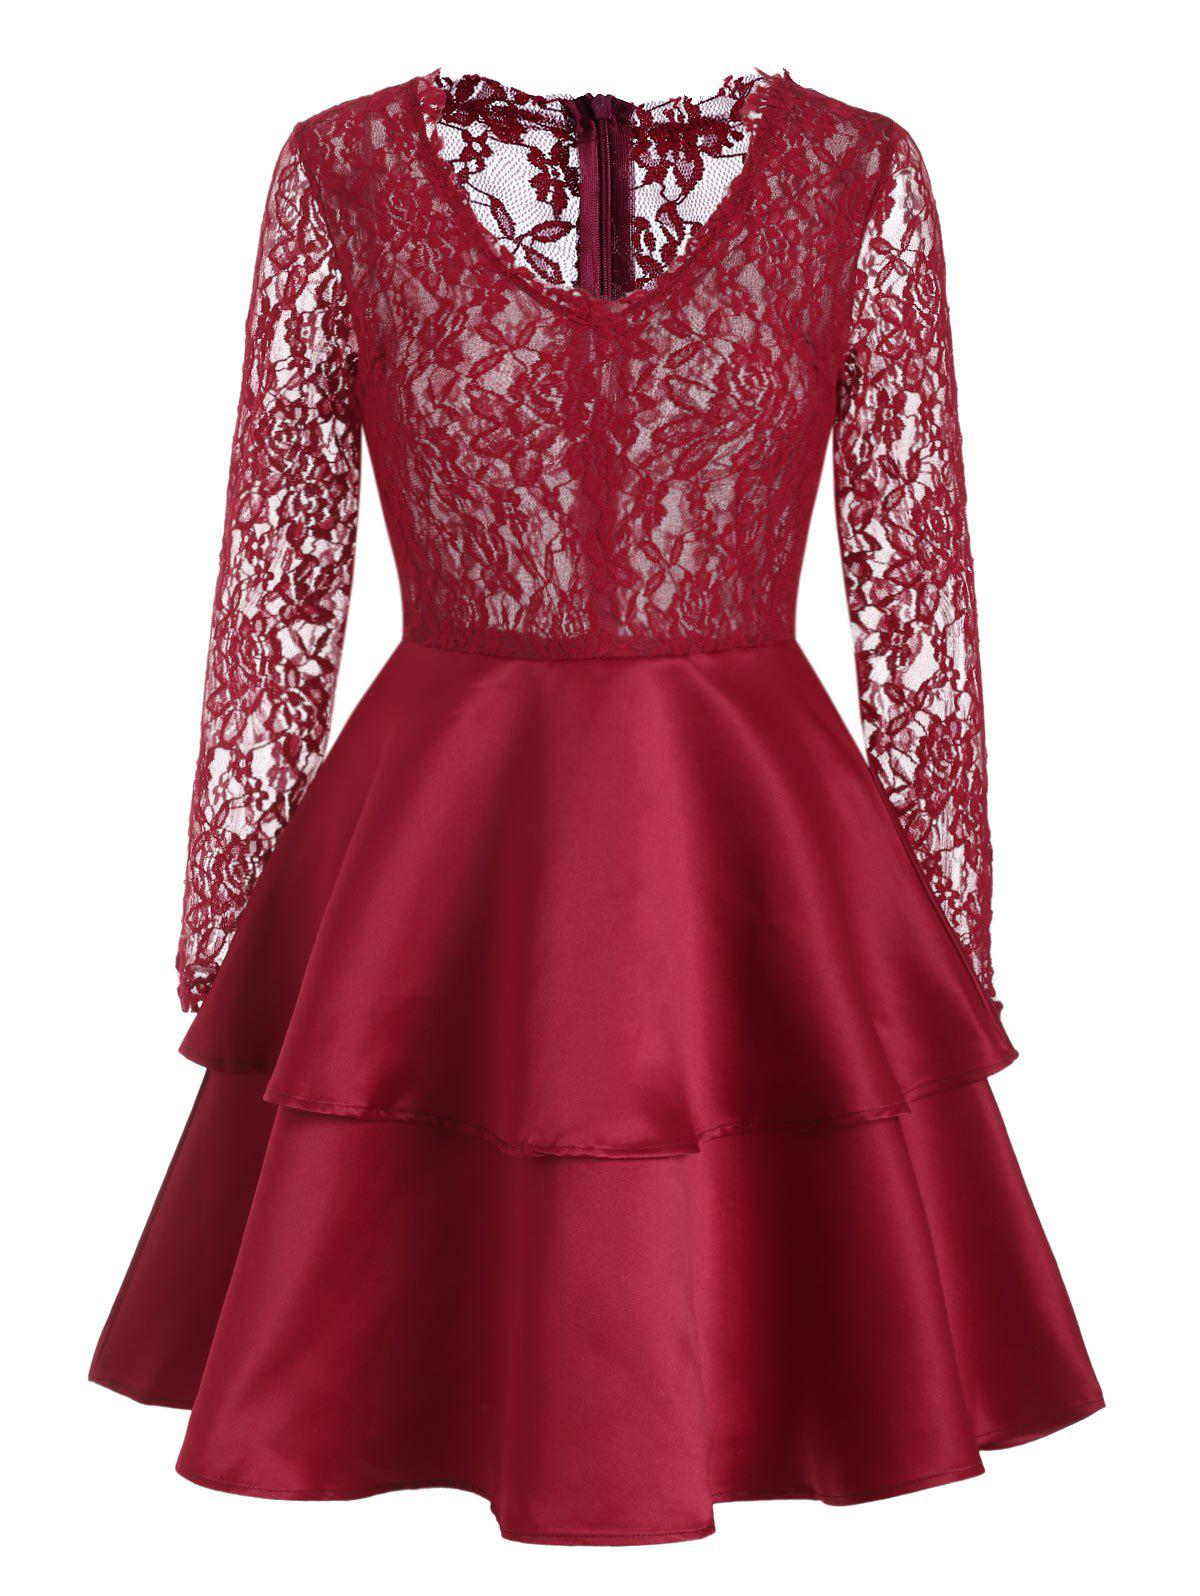 Lace Panel V Neck Layered Dress - RED WINE L